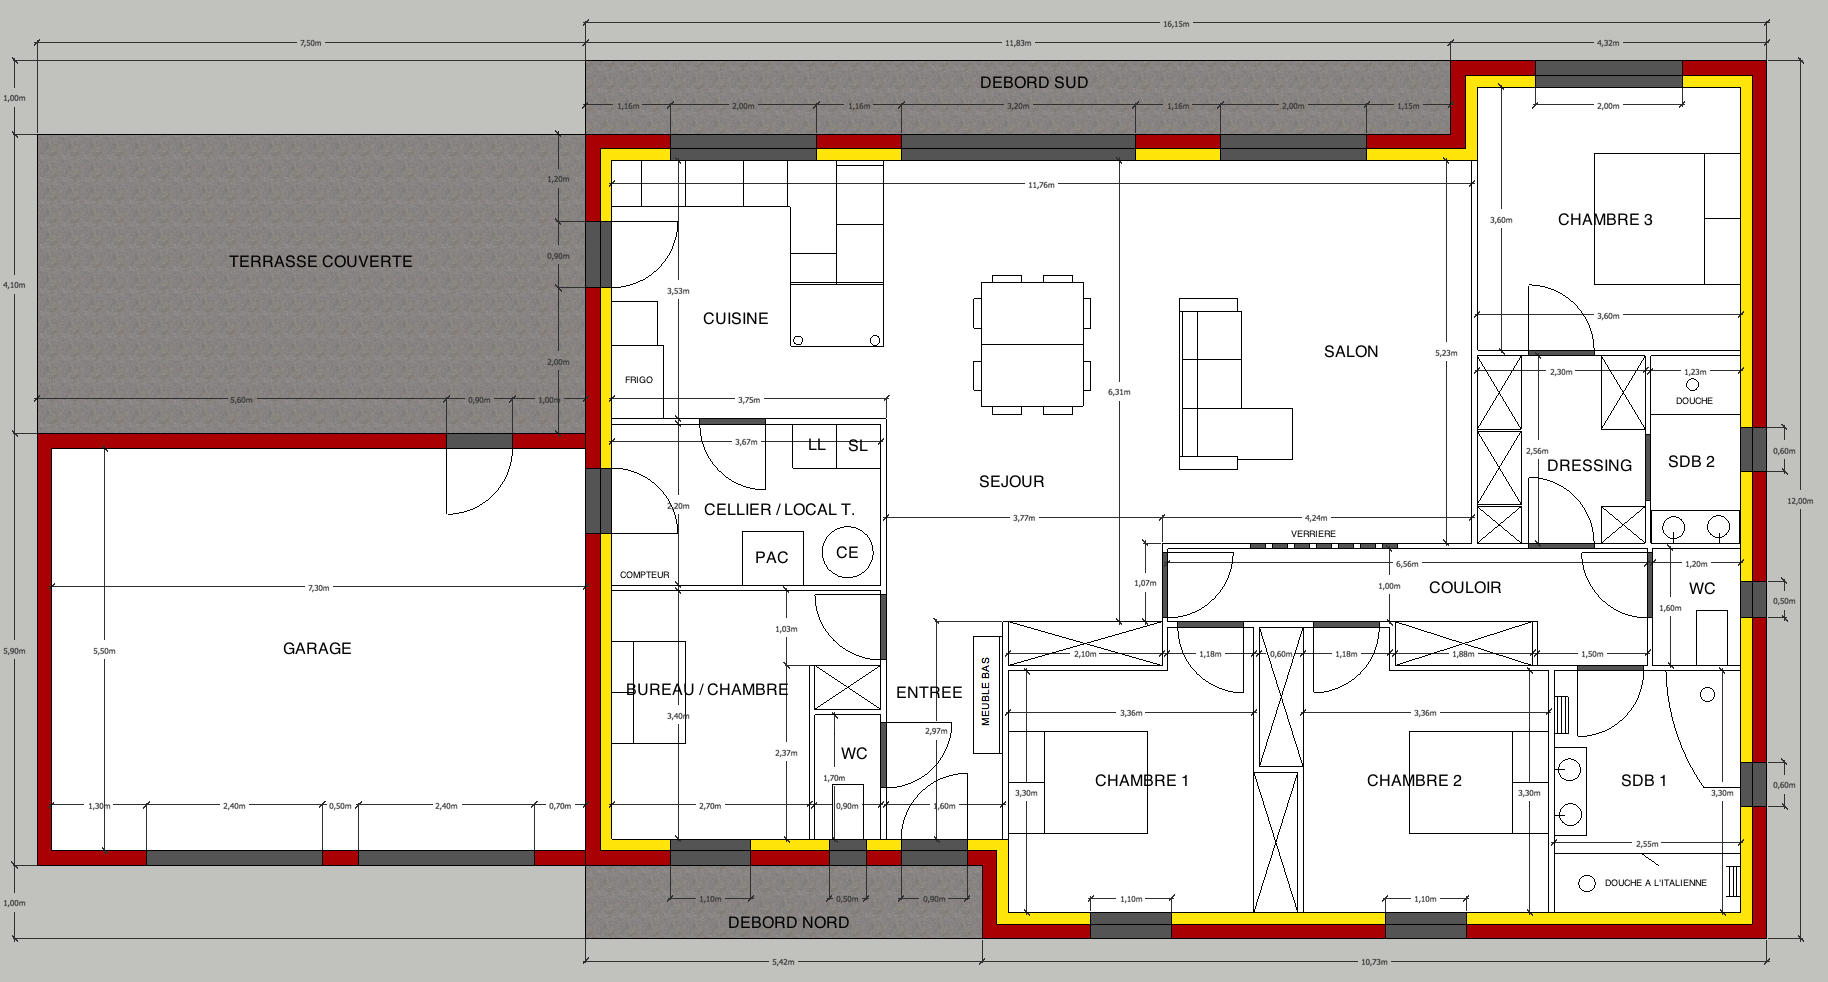 Plan de maison de 150m2 for Programme pour faire des plans de maison